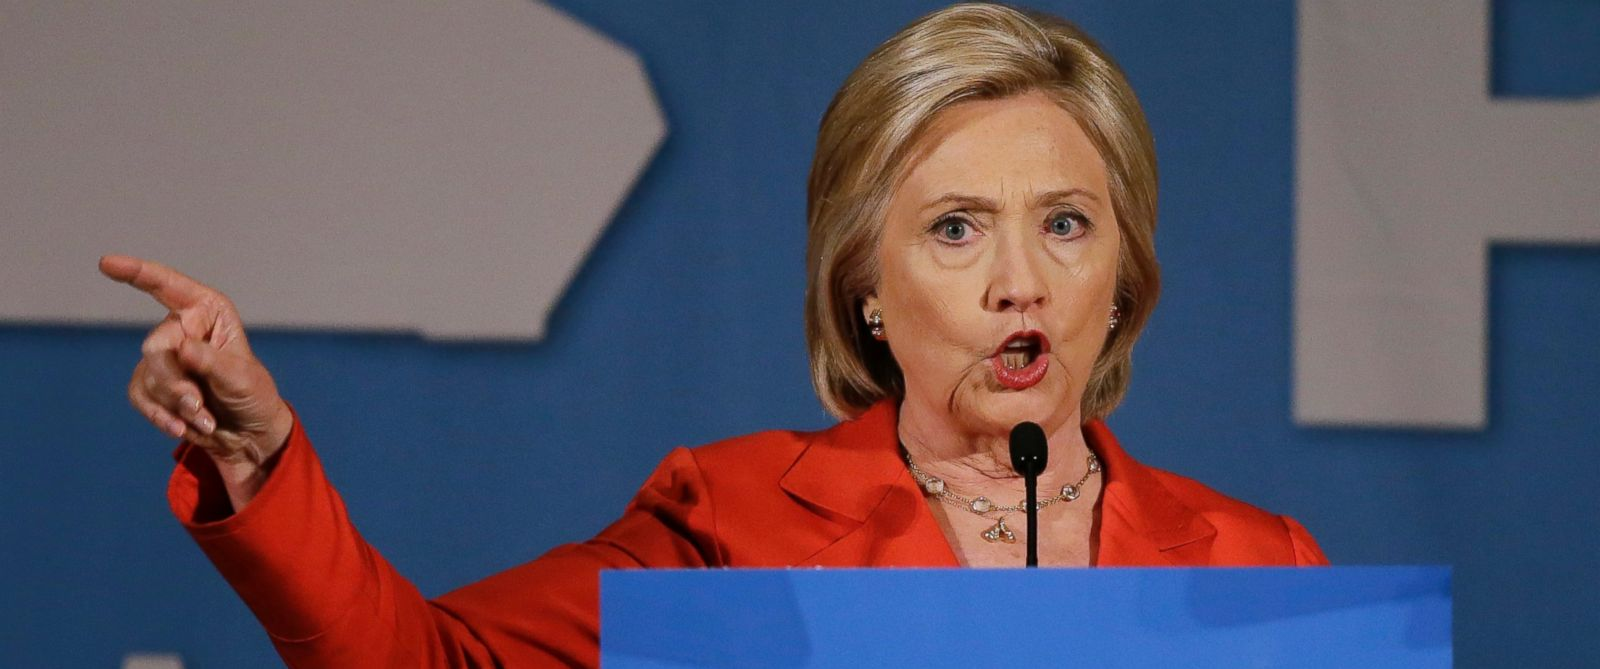 PHOTO: Democratic presidential candidate Hillary Rodham Clinton speaks during the Iowa Democratic Partys Hall of Fame Dinner, Friday, July 17, 2015, in Cedar Rapids, Iowa.